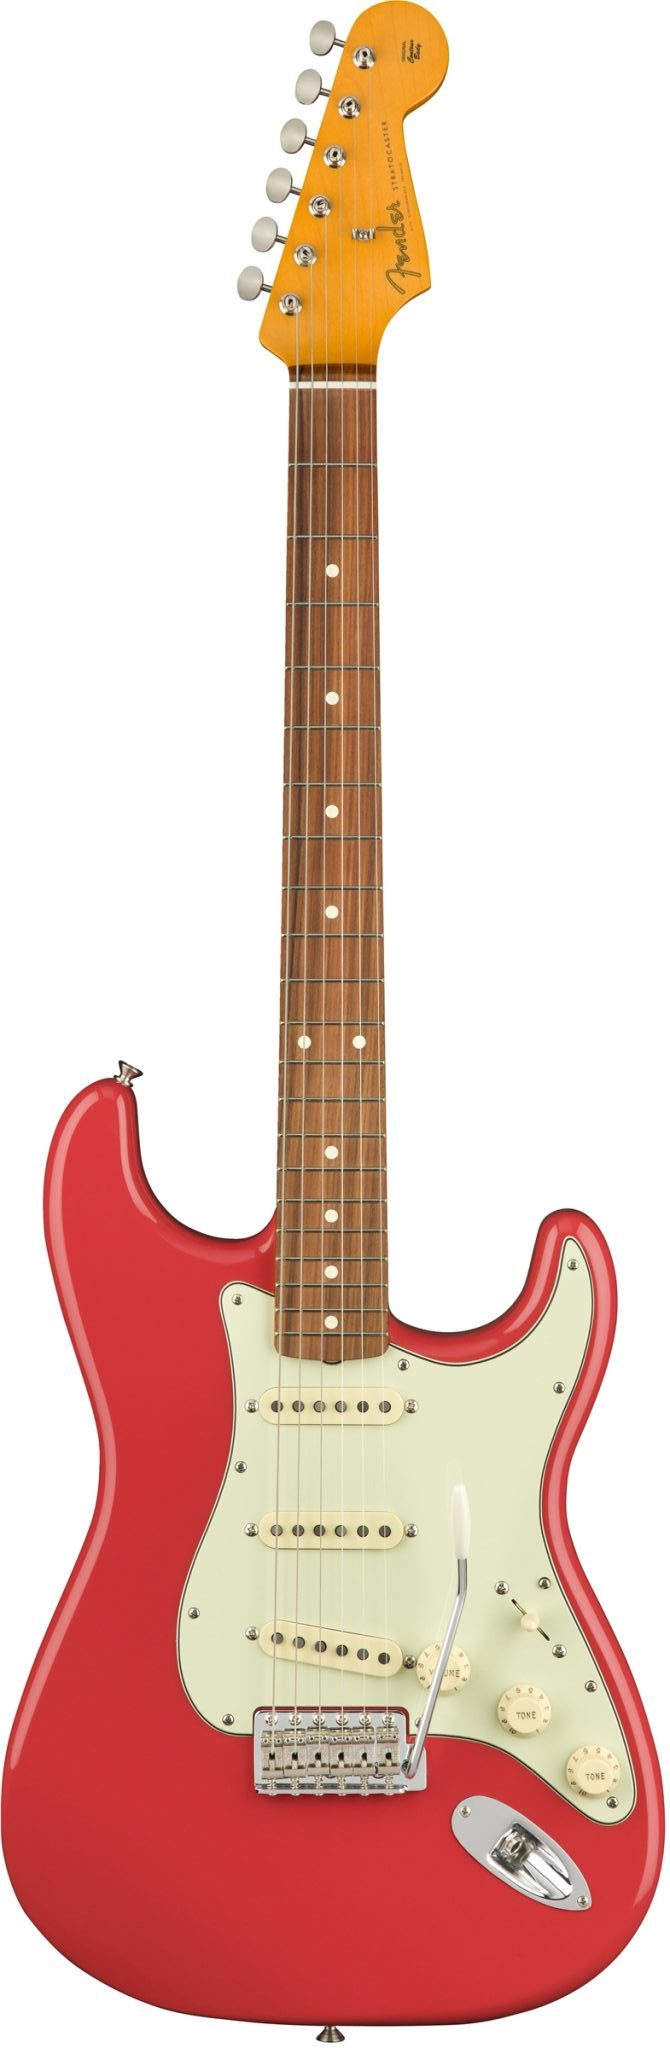 Fender Classic Series '60's Stratocaster Lacquer